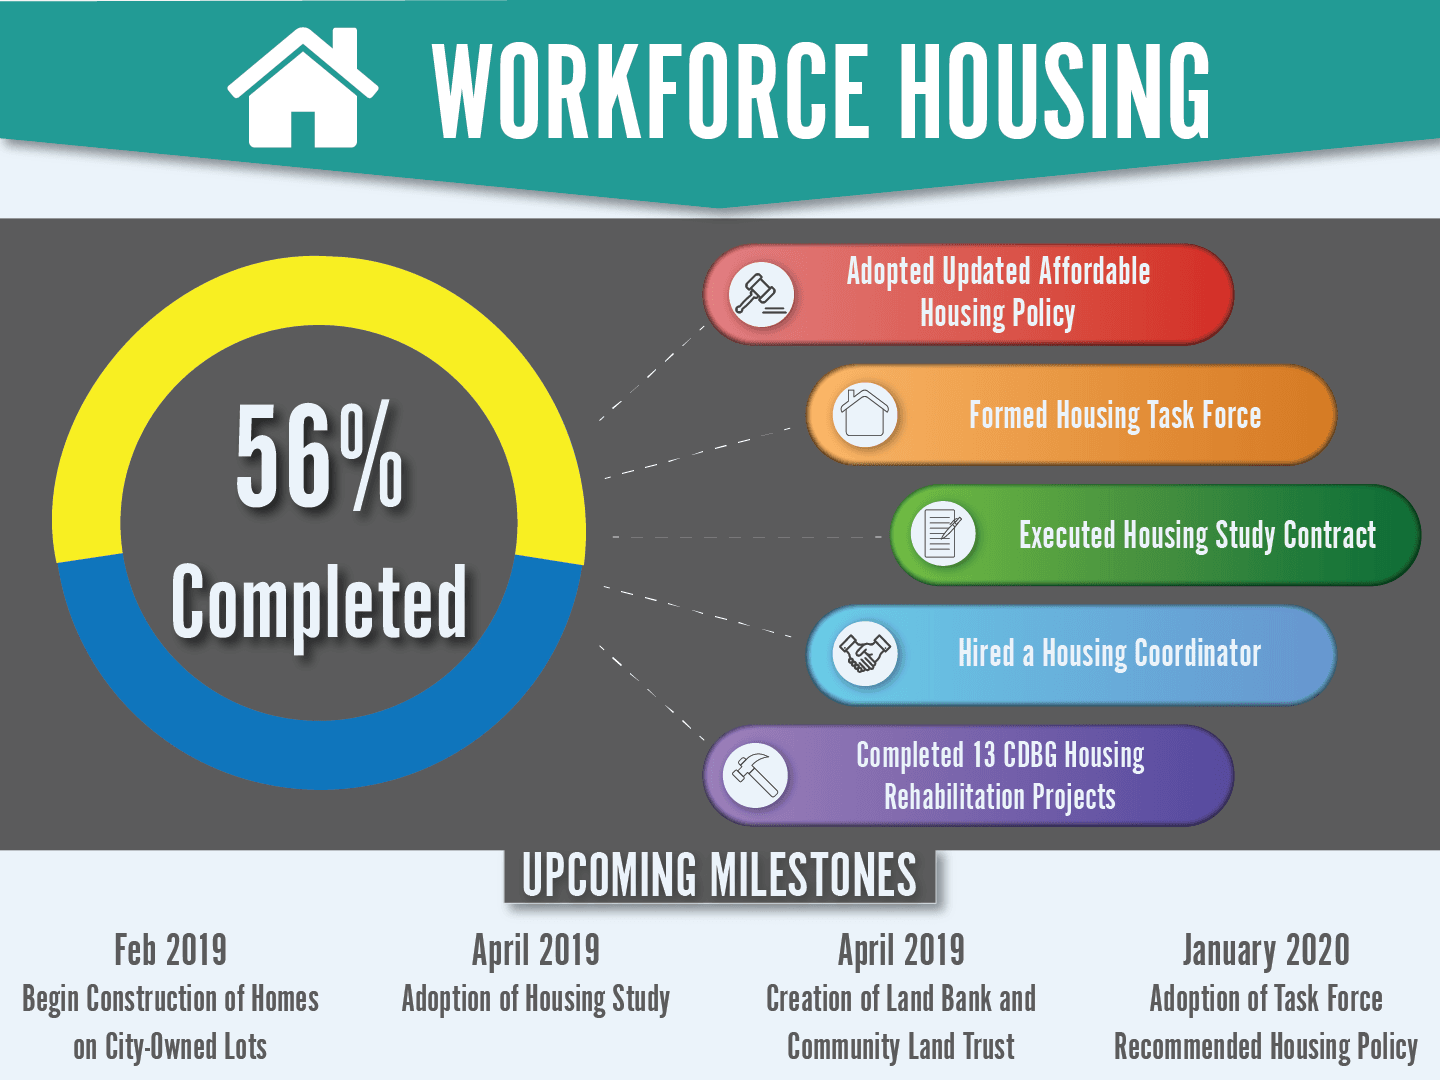 Workforce Housing Dashboard showing a 56% Completion Rate